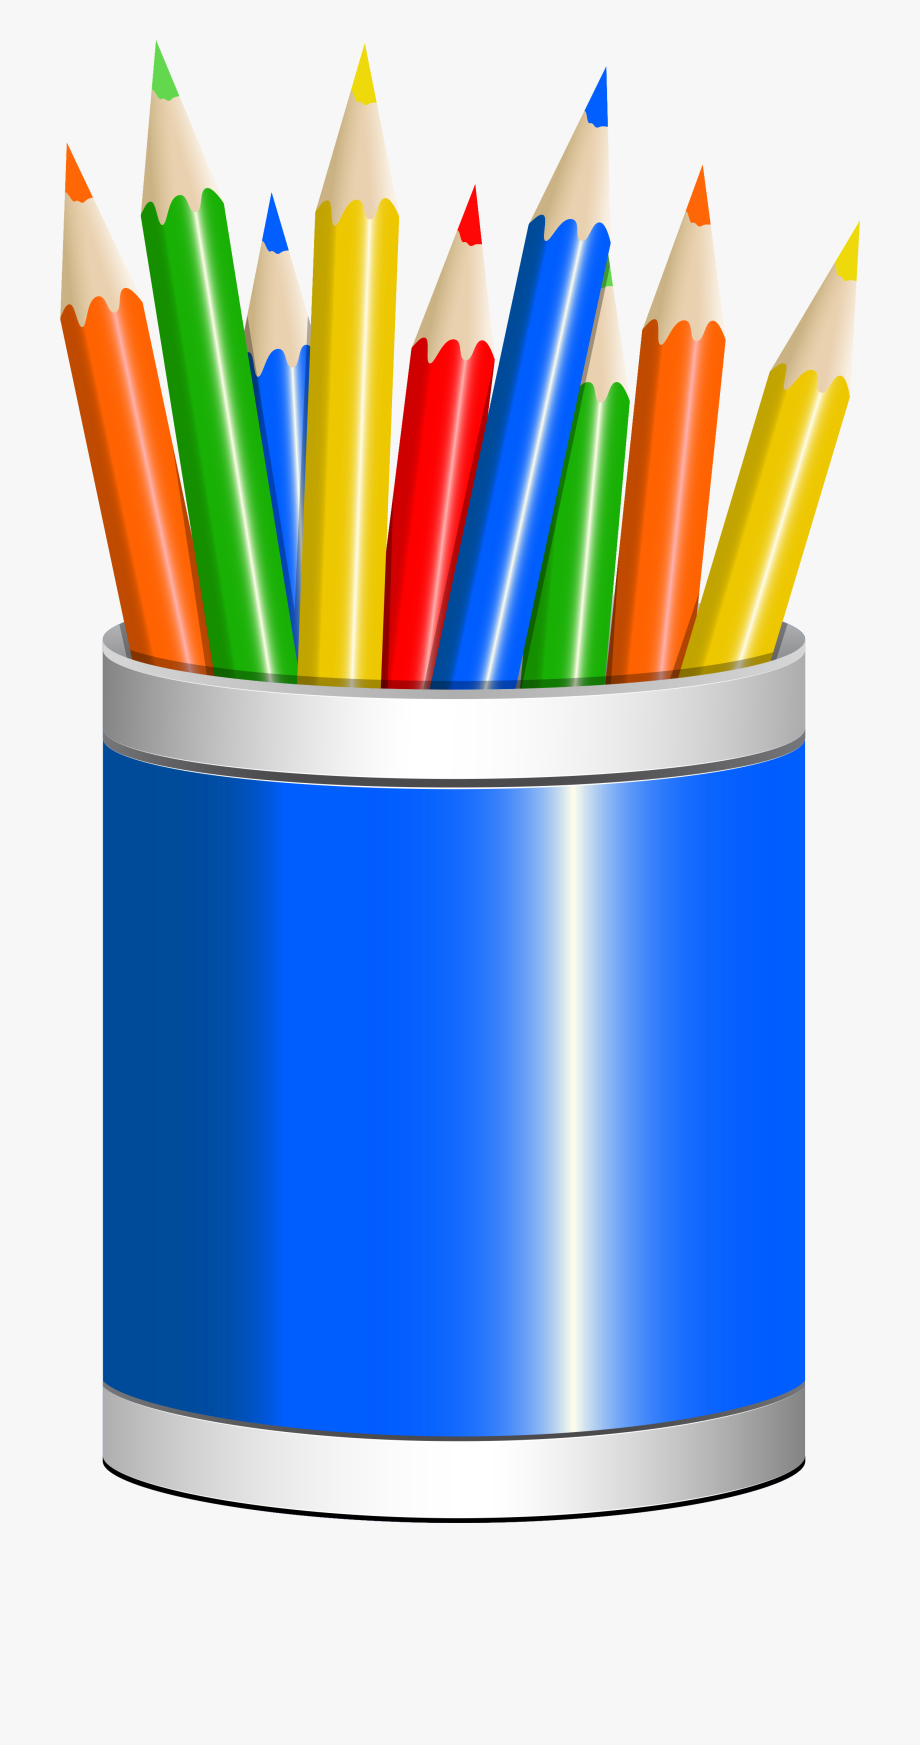 Clip art free stock. Crayons clipart pencil cup